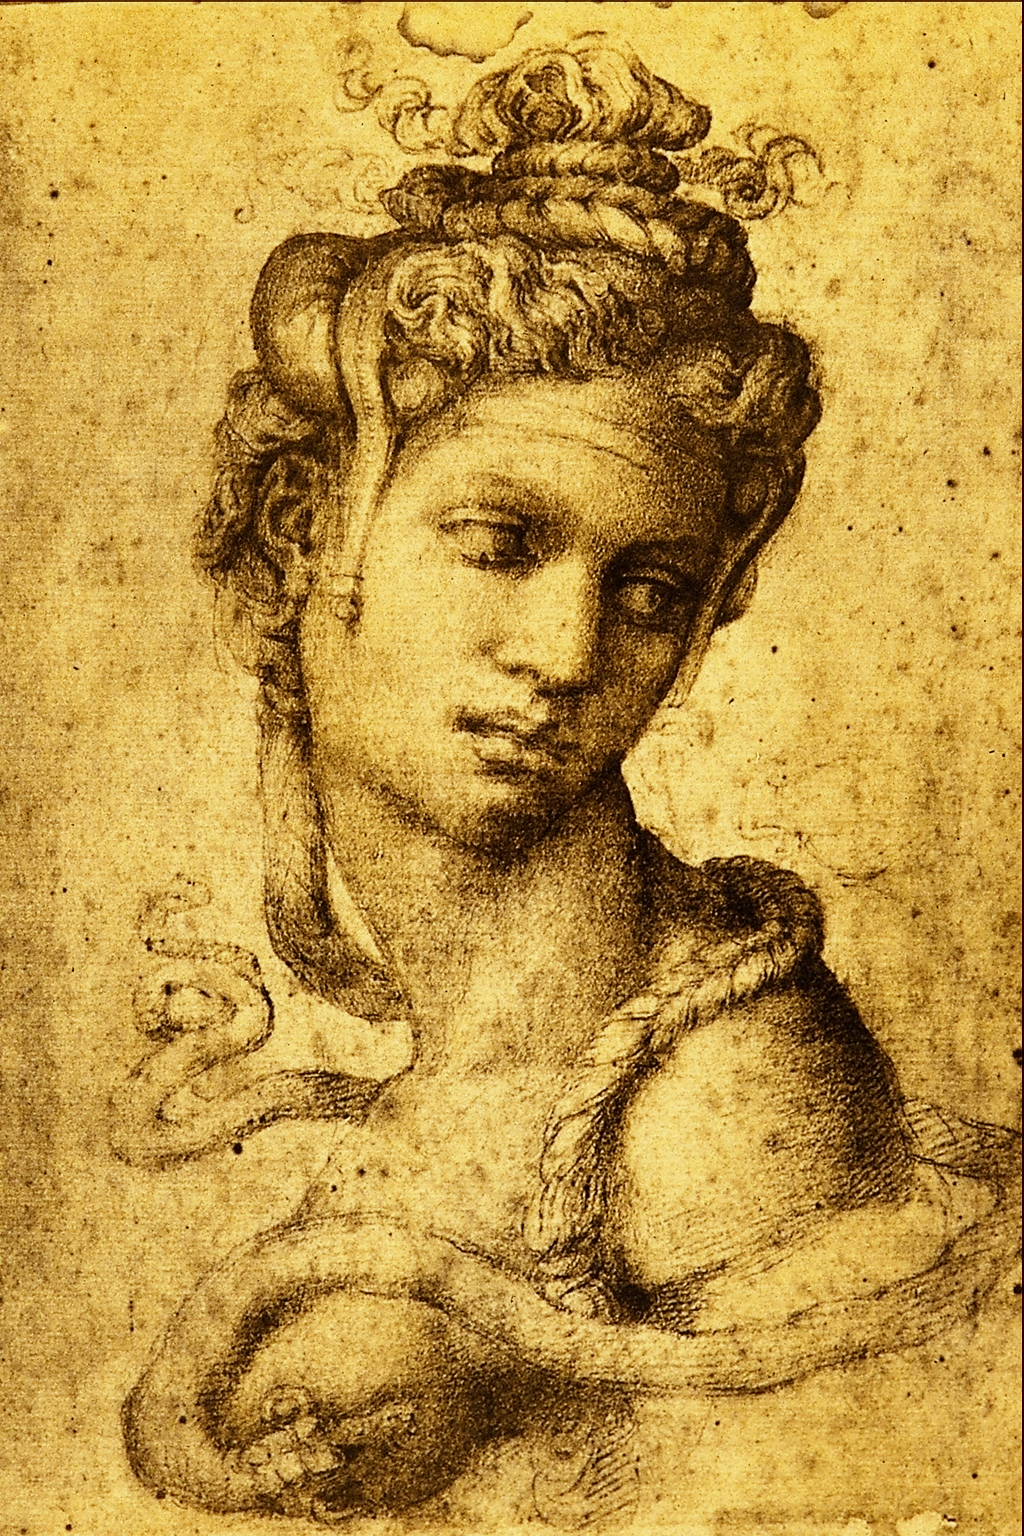 the early works and education of michelangelo buonarroti Michelangelo buonarroti (1475-1564) is unique in the history of world art as the  only  michelangelo was provided a humanist education initially, but when he  was thirteen his  michelangelo's earliest surviving works were small relief  panels.